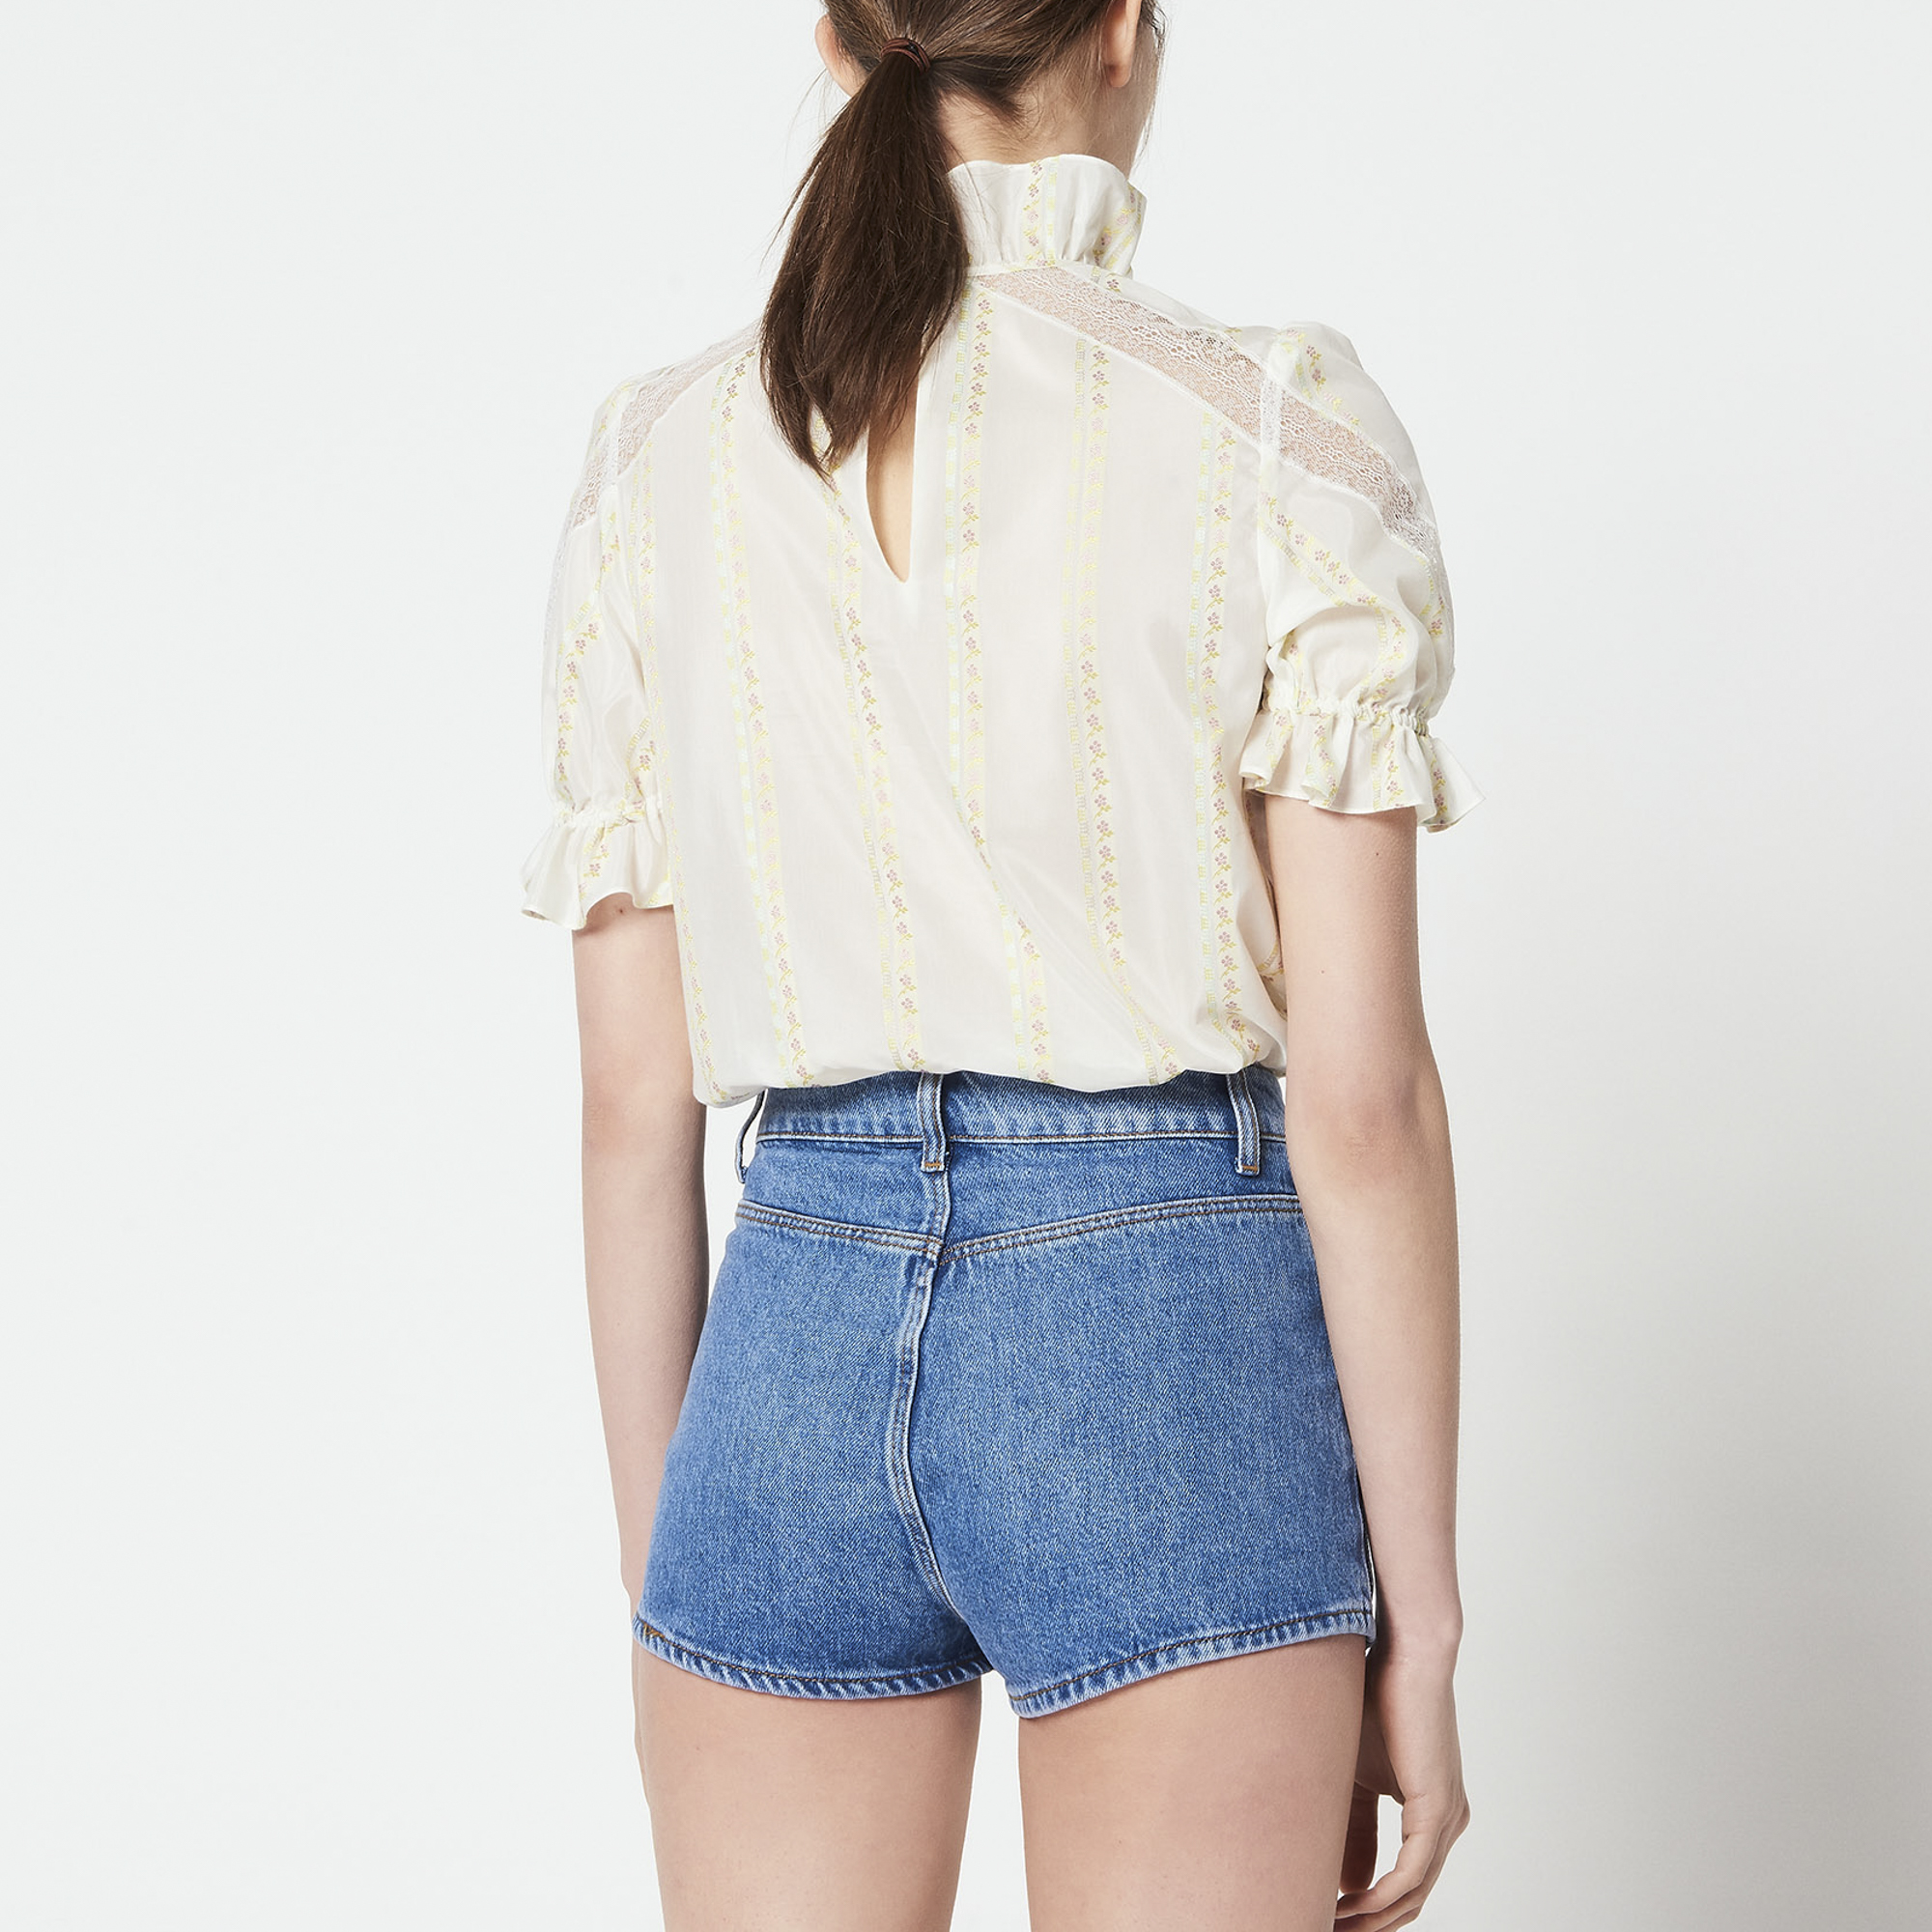 Short in jeans con tasche a vista : Gonne & Short colore Blue Vintage - Denim